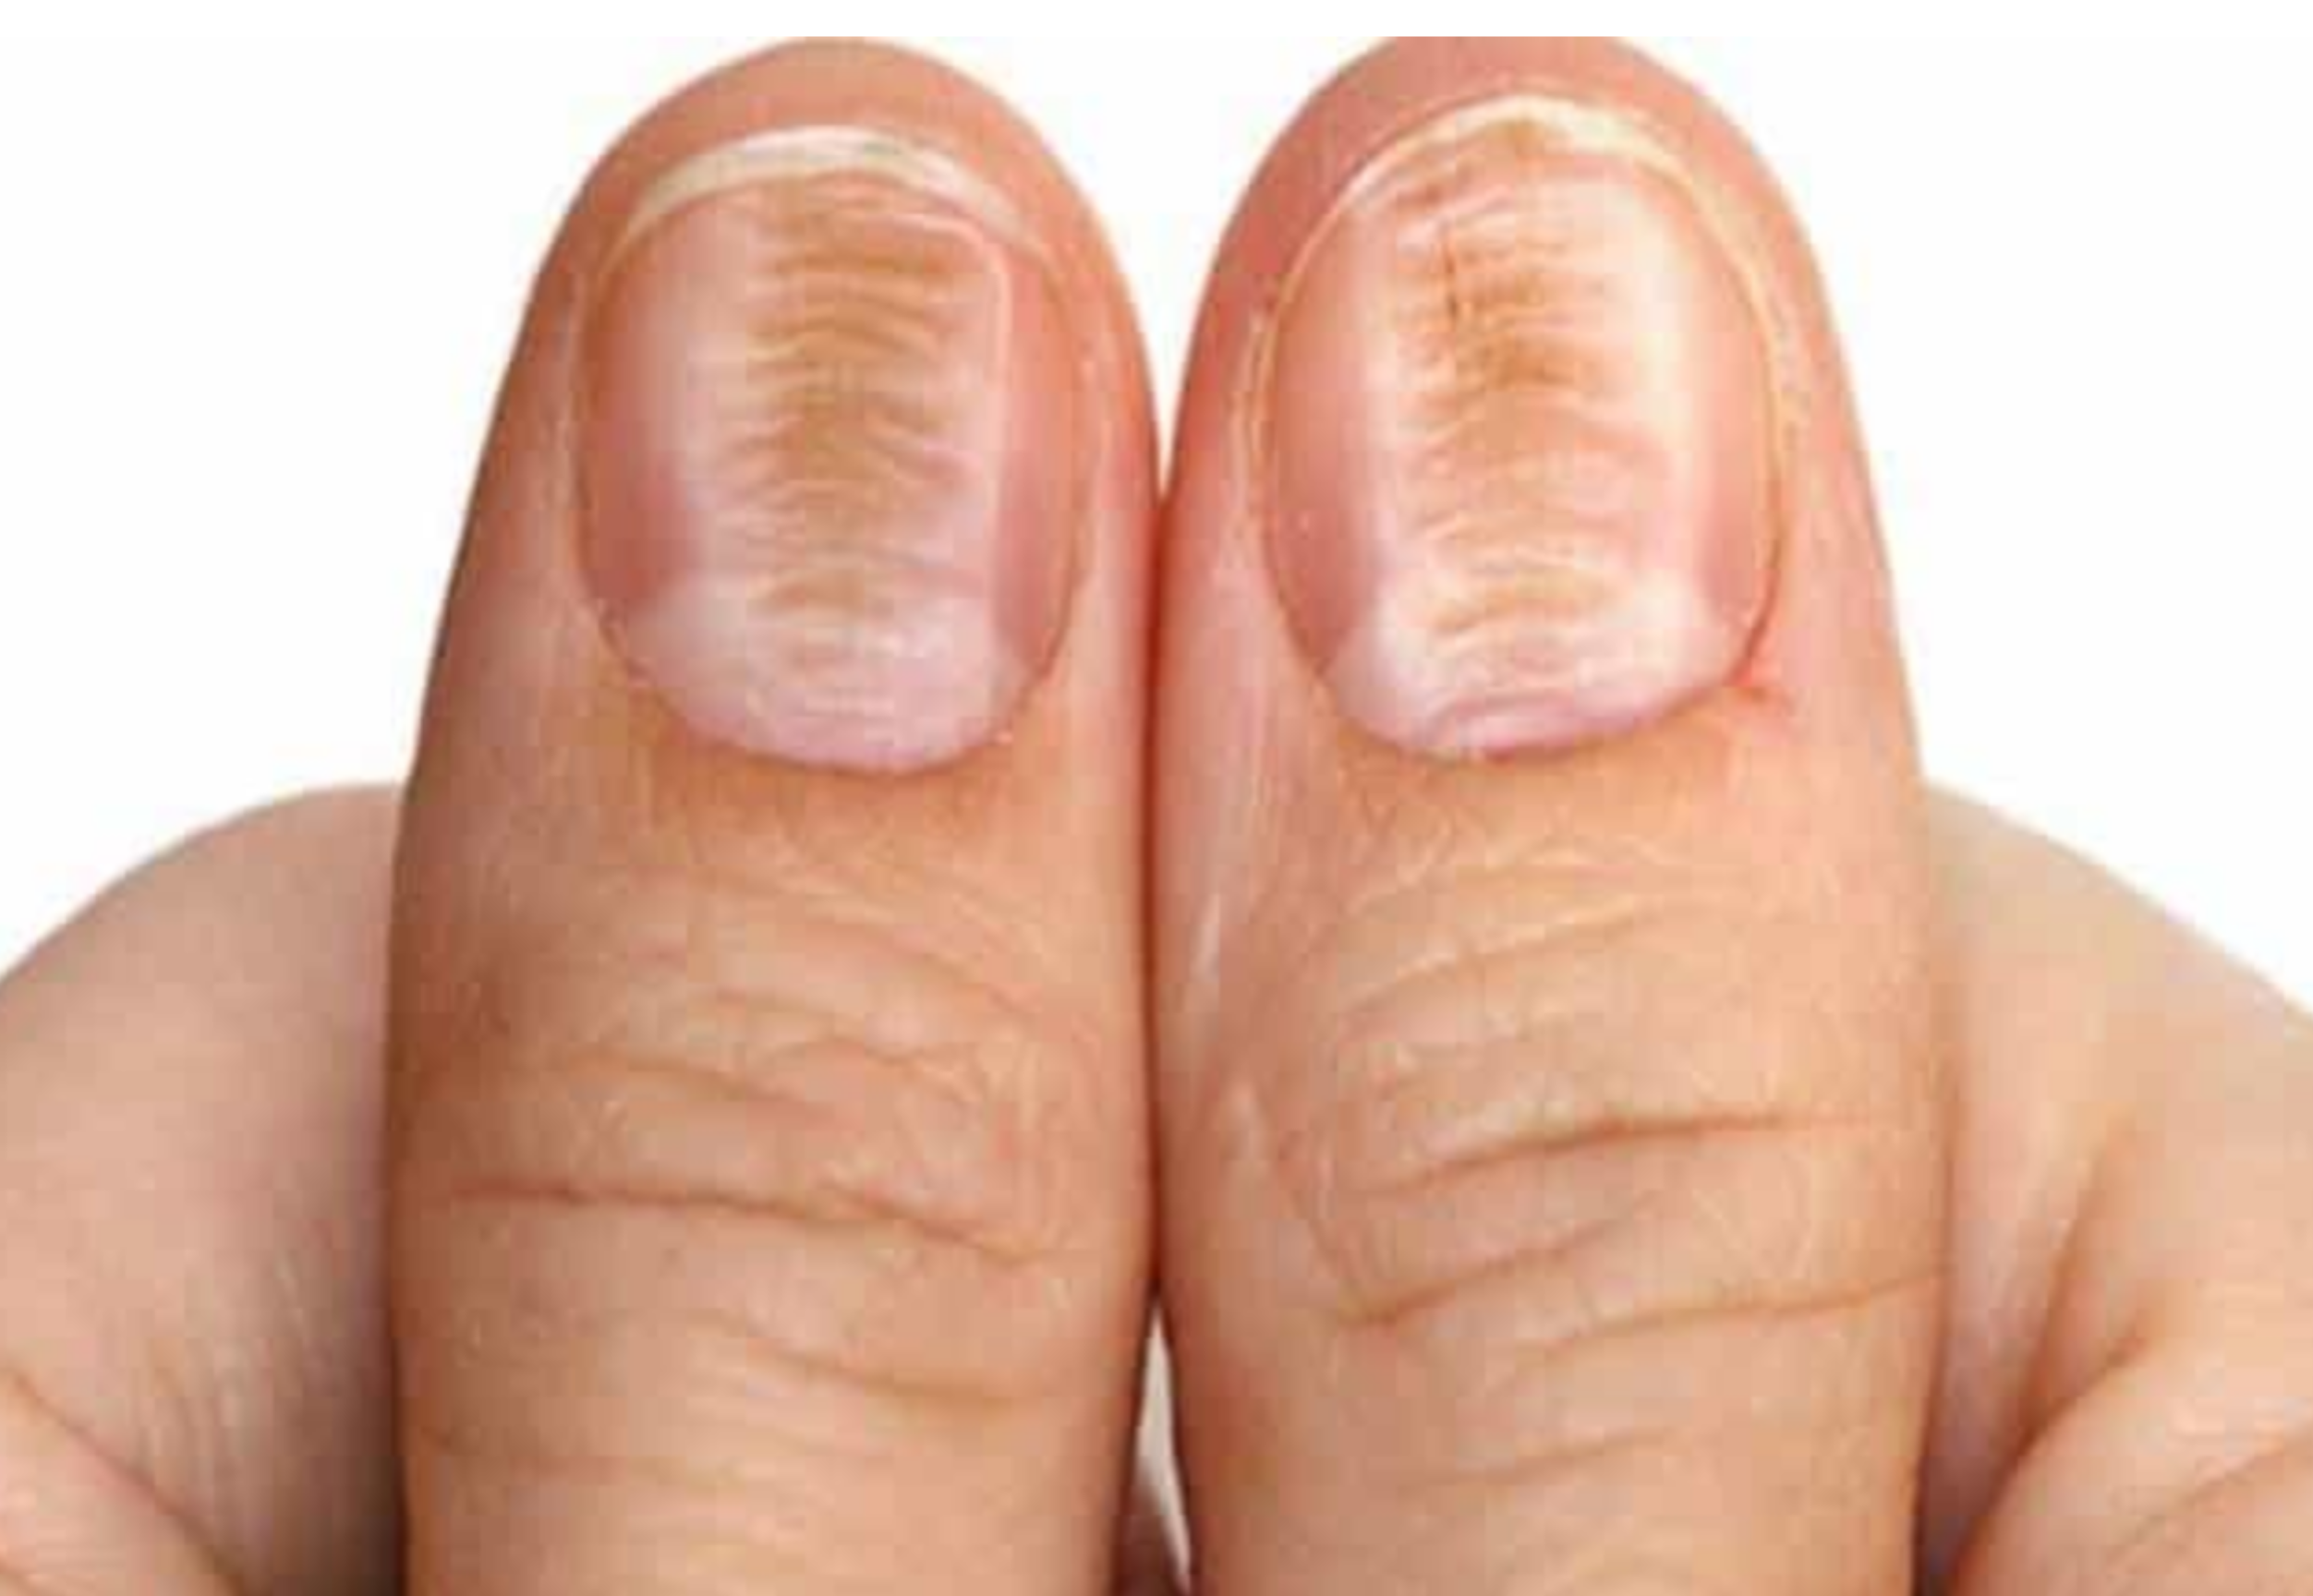 Vertical Ridges on Nails Vitamin Deficiency